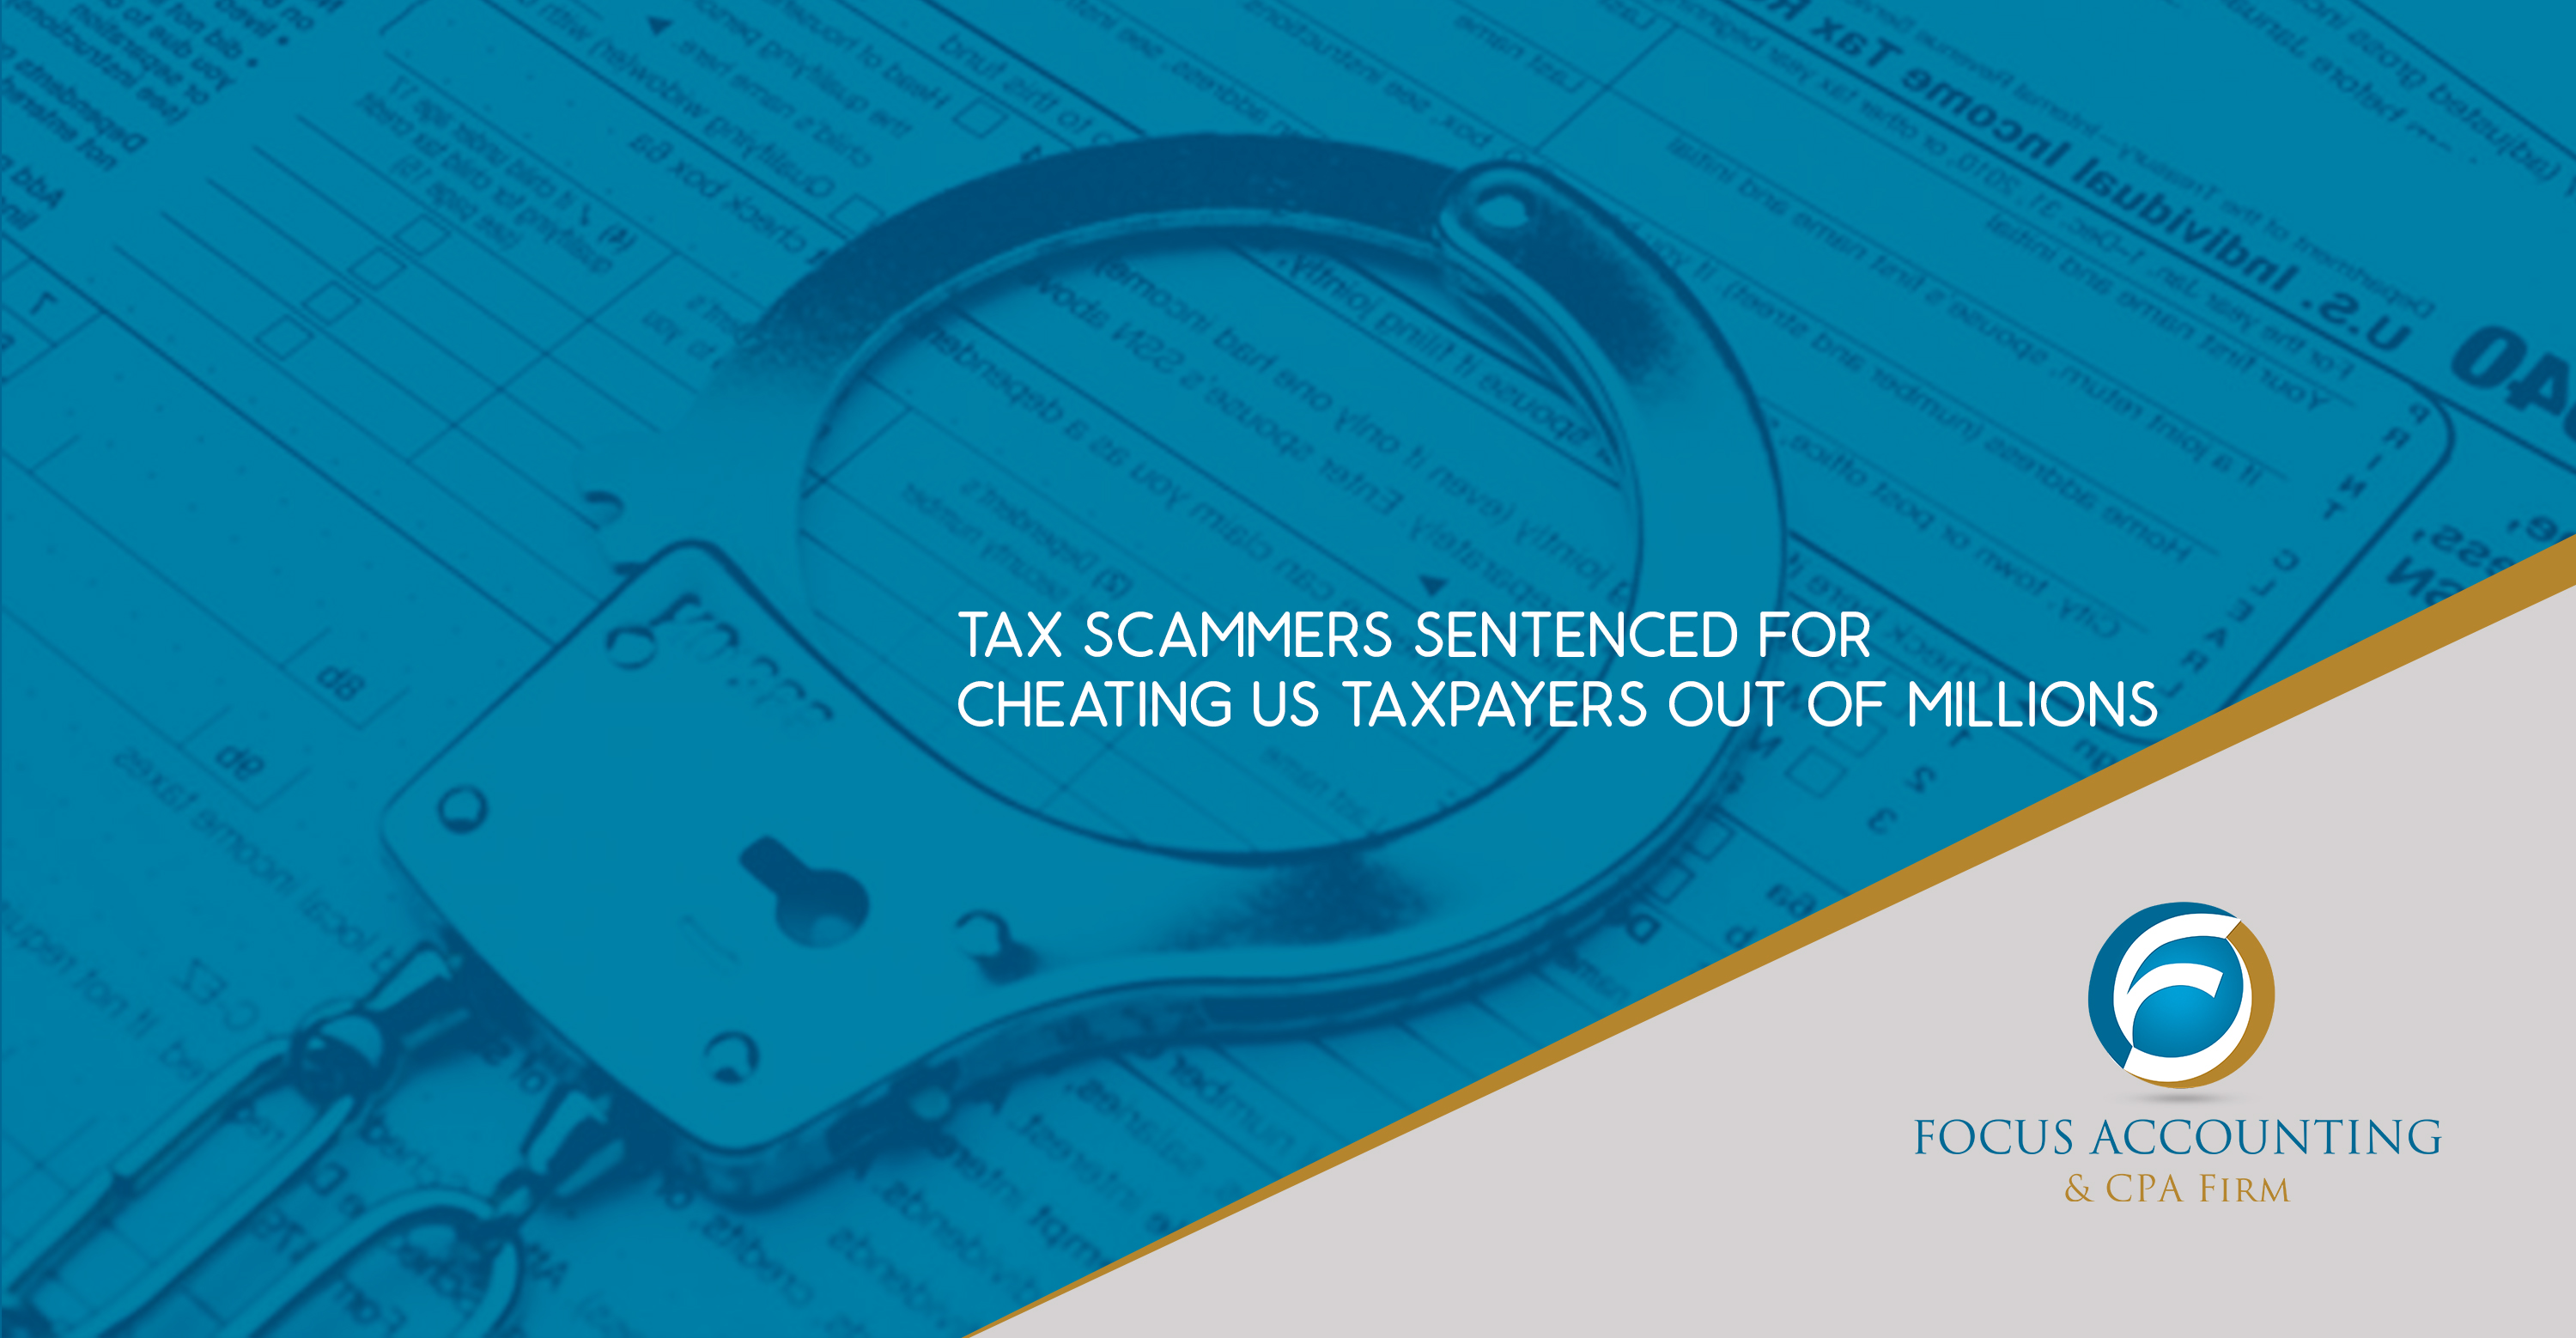 Tax scammers sentenced for cheating US taxpayers out of millions